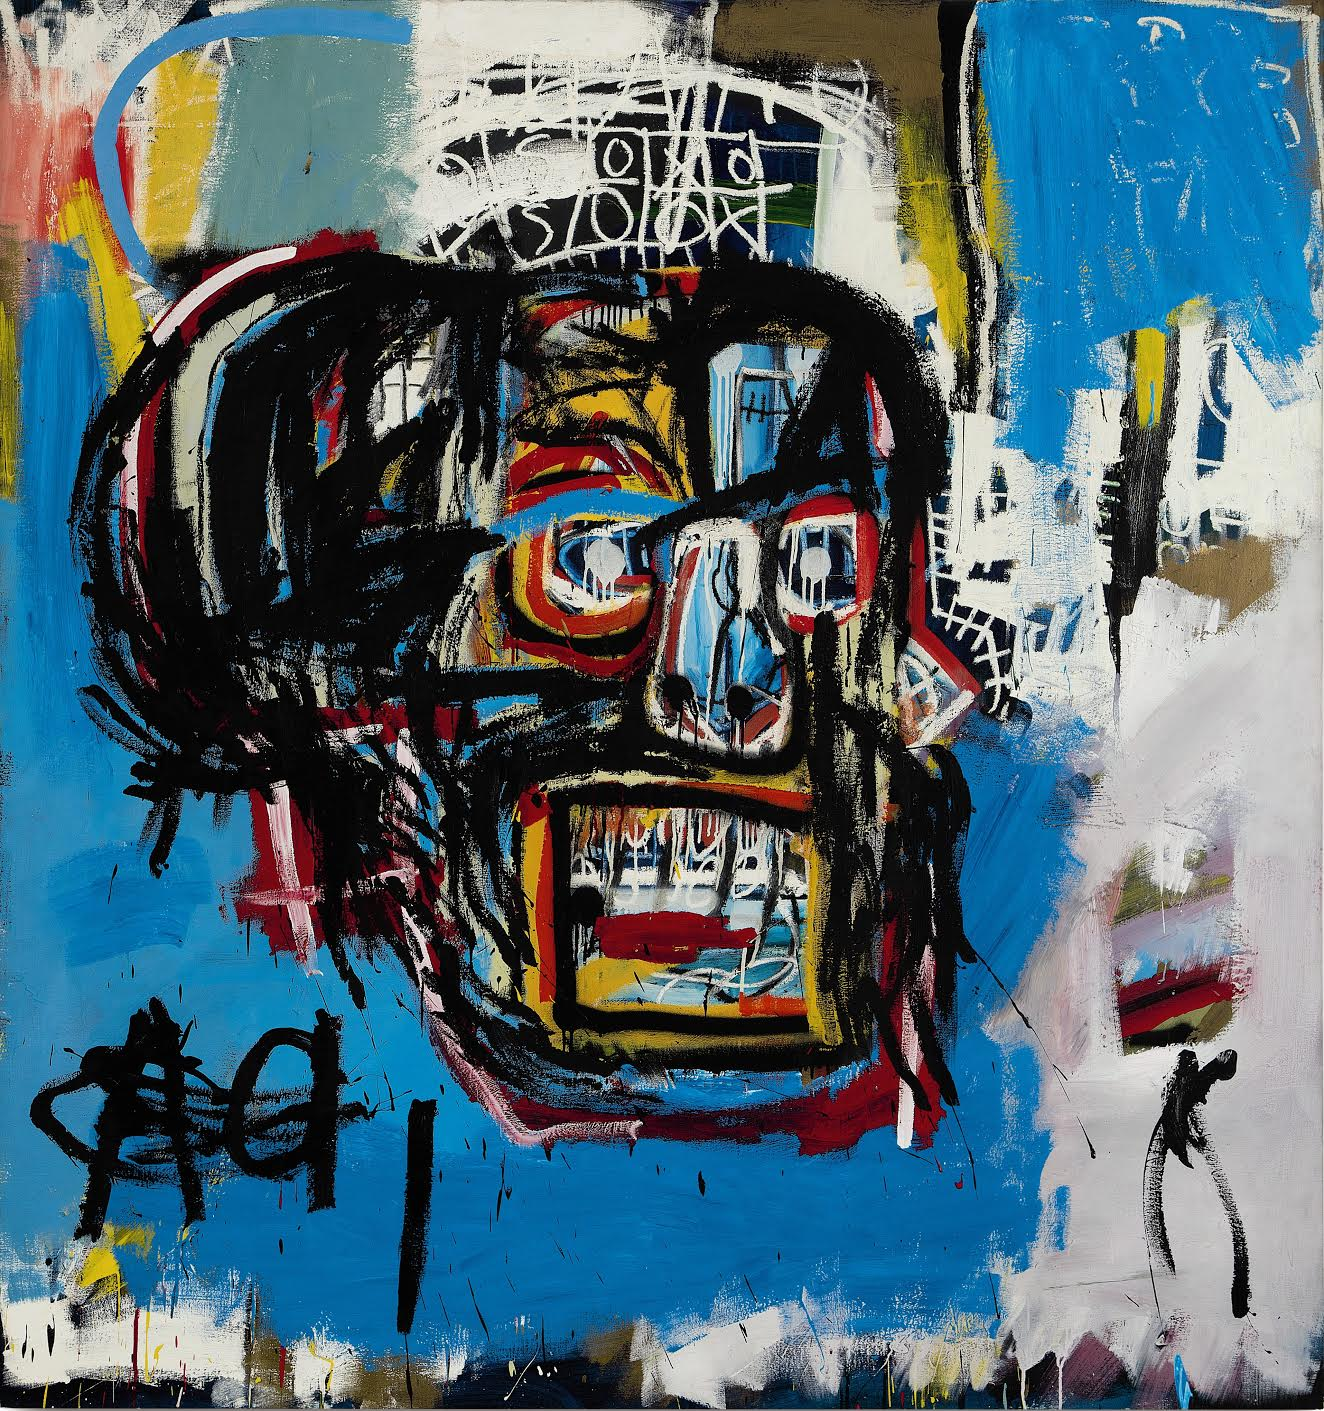 'Untitled' (1982) by Jean-Michael Basquiat rewrites the history books.